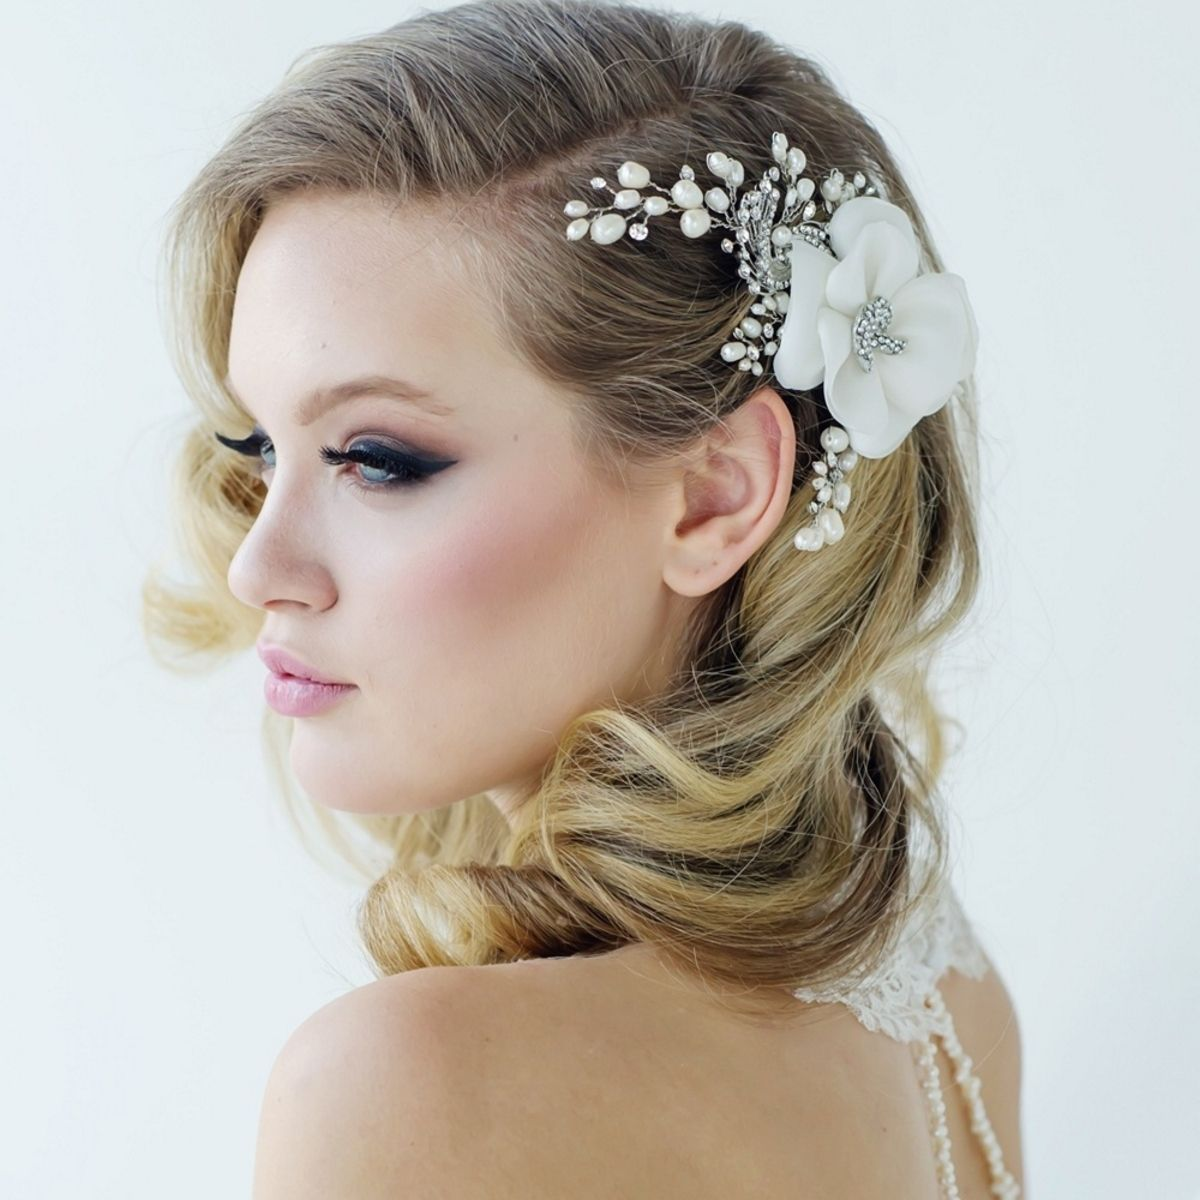 pin by liz galassi on style this hair | flower headpiece